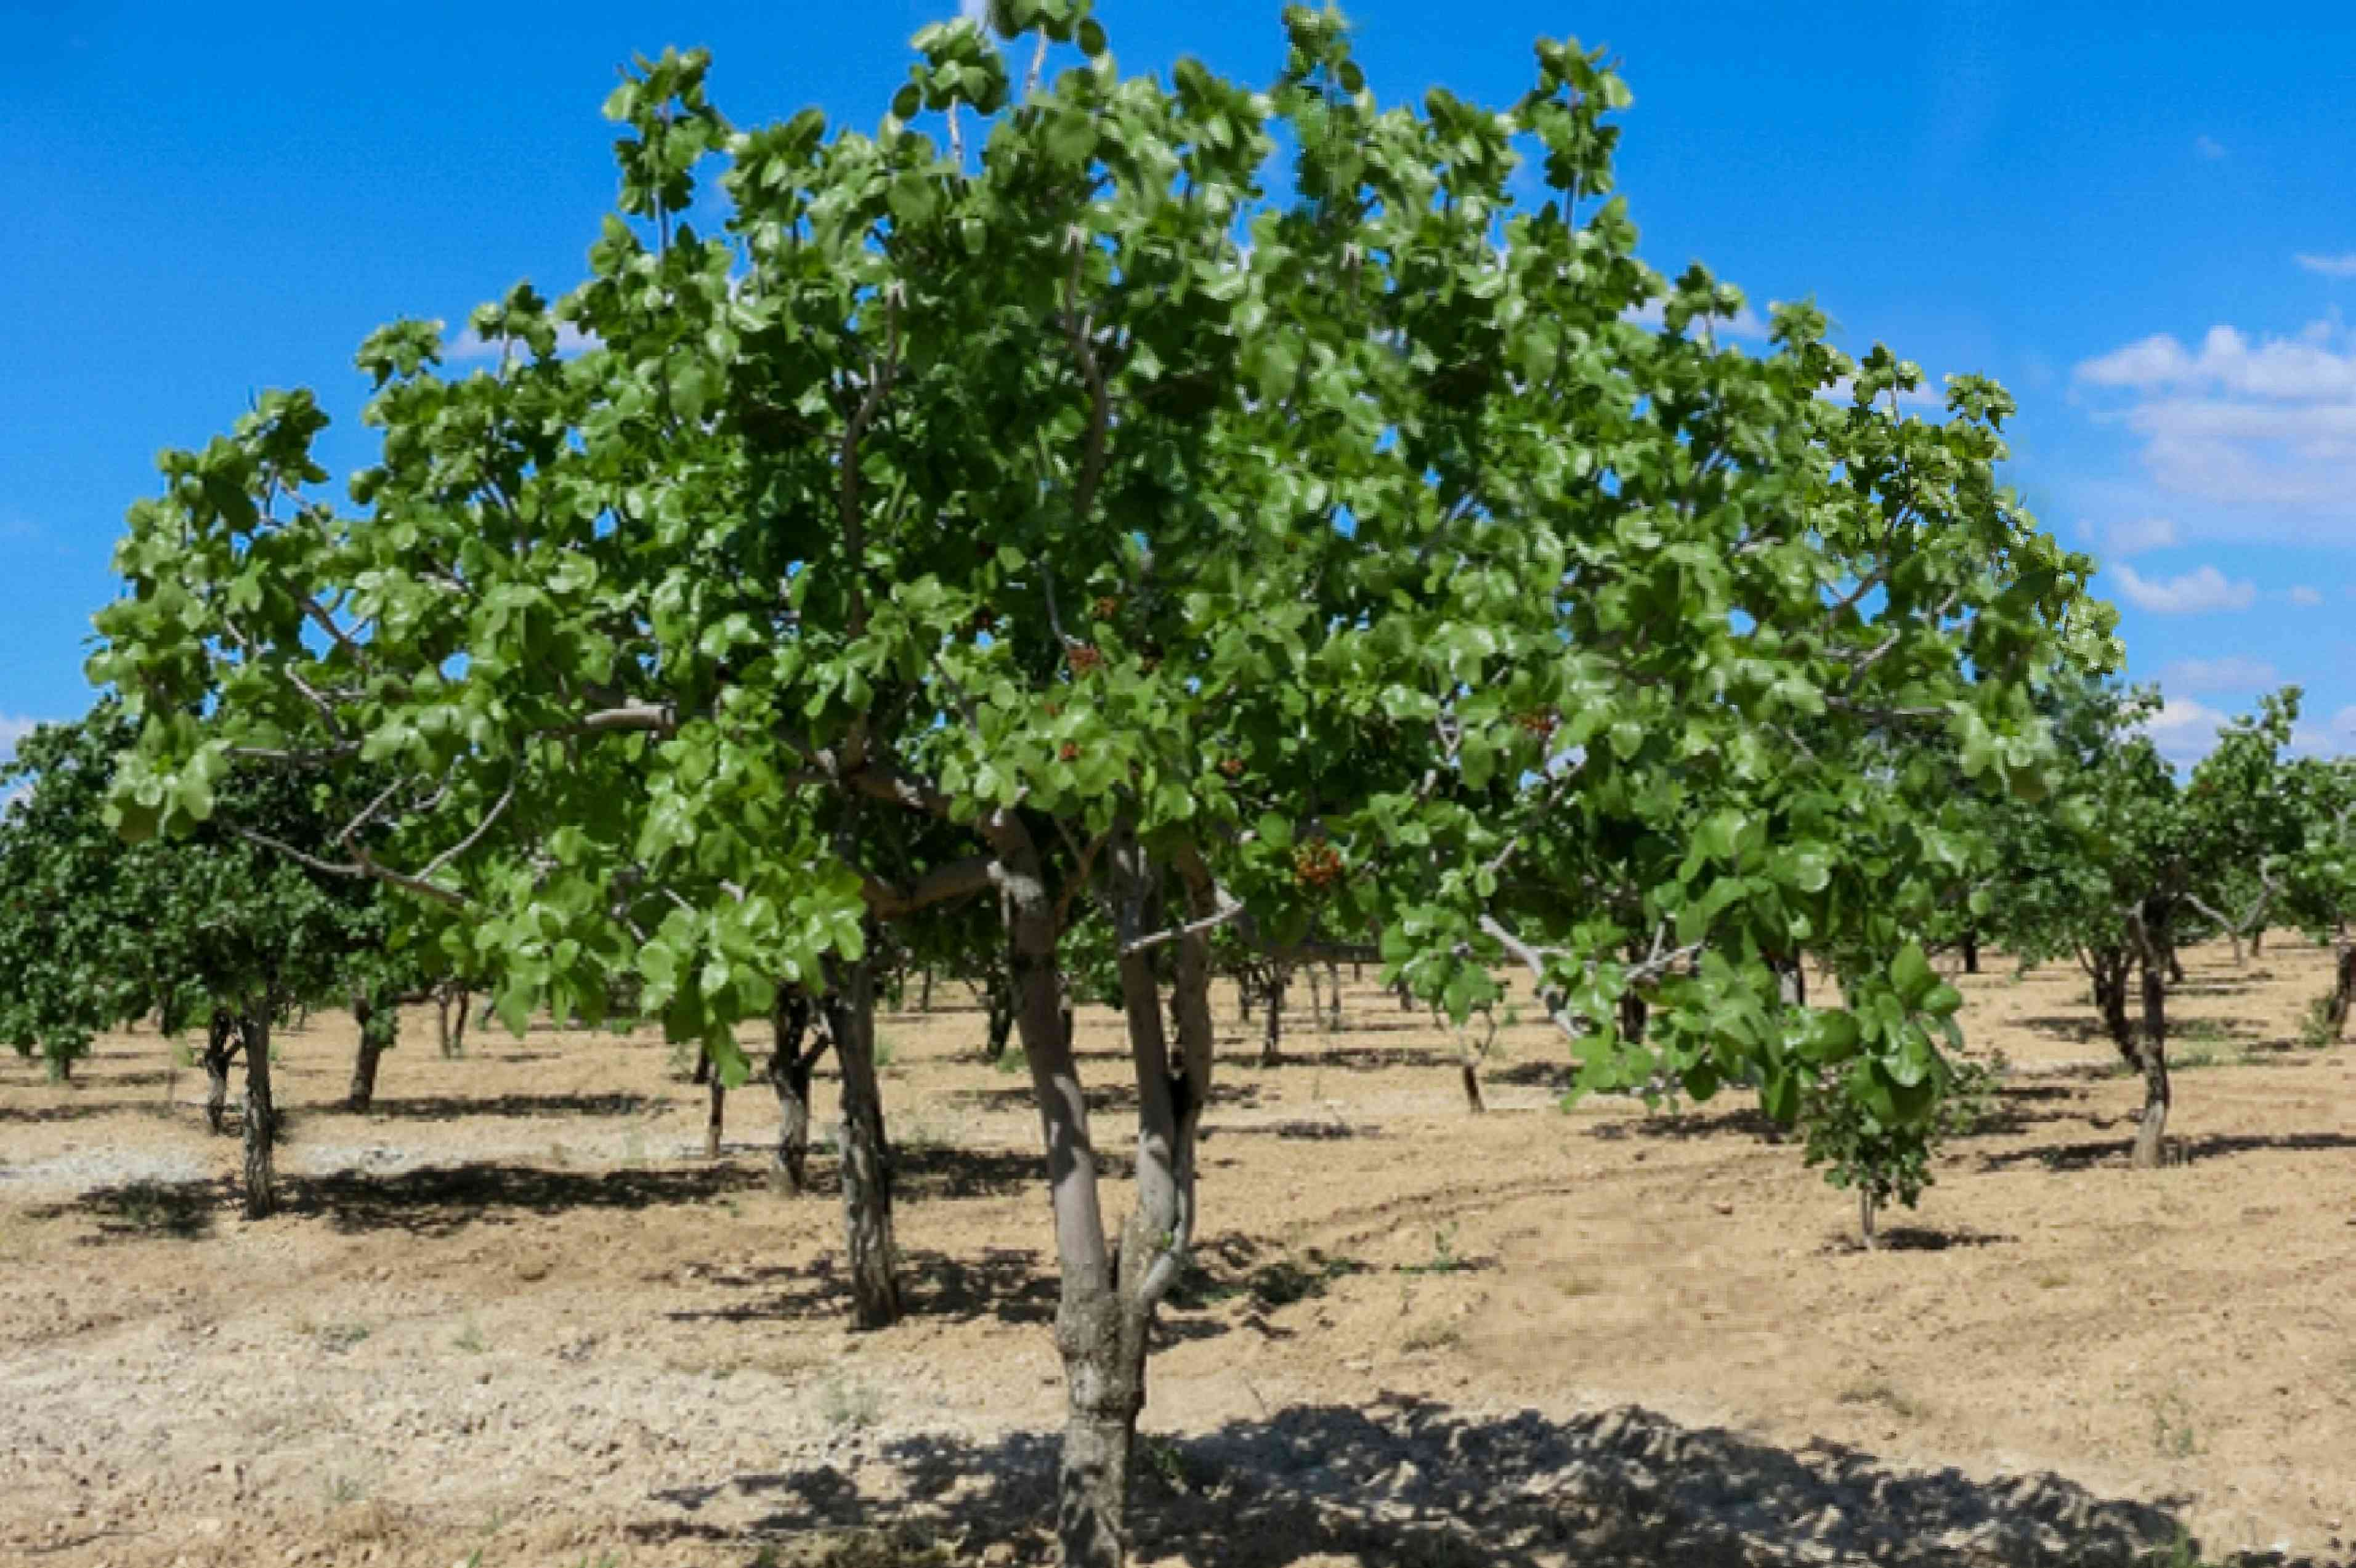 Pistachio tree in arid orchard of other trees against blue sky